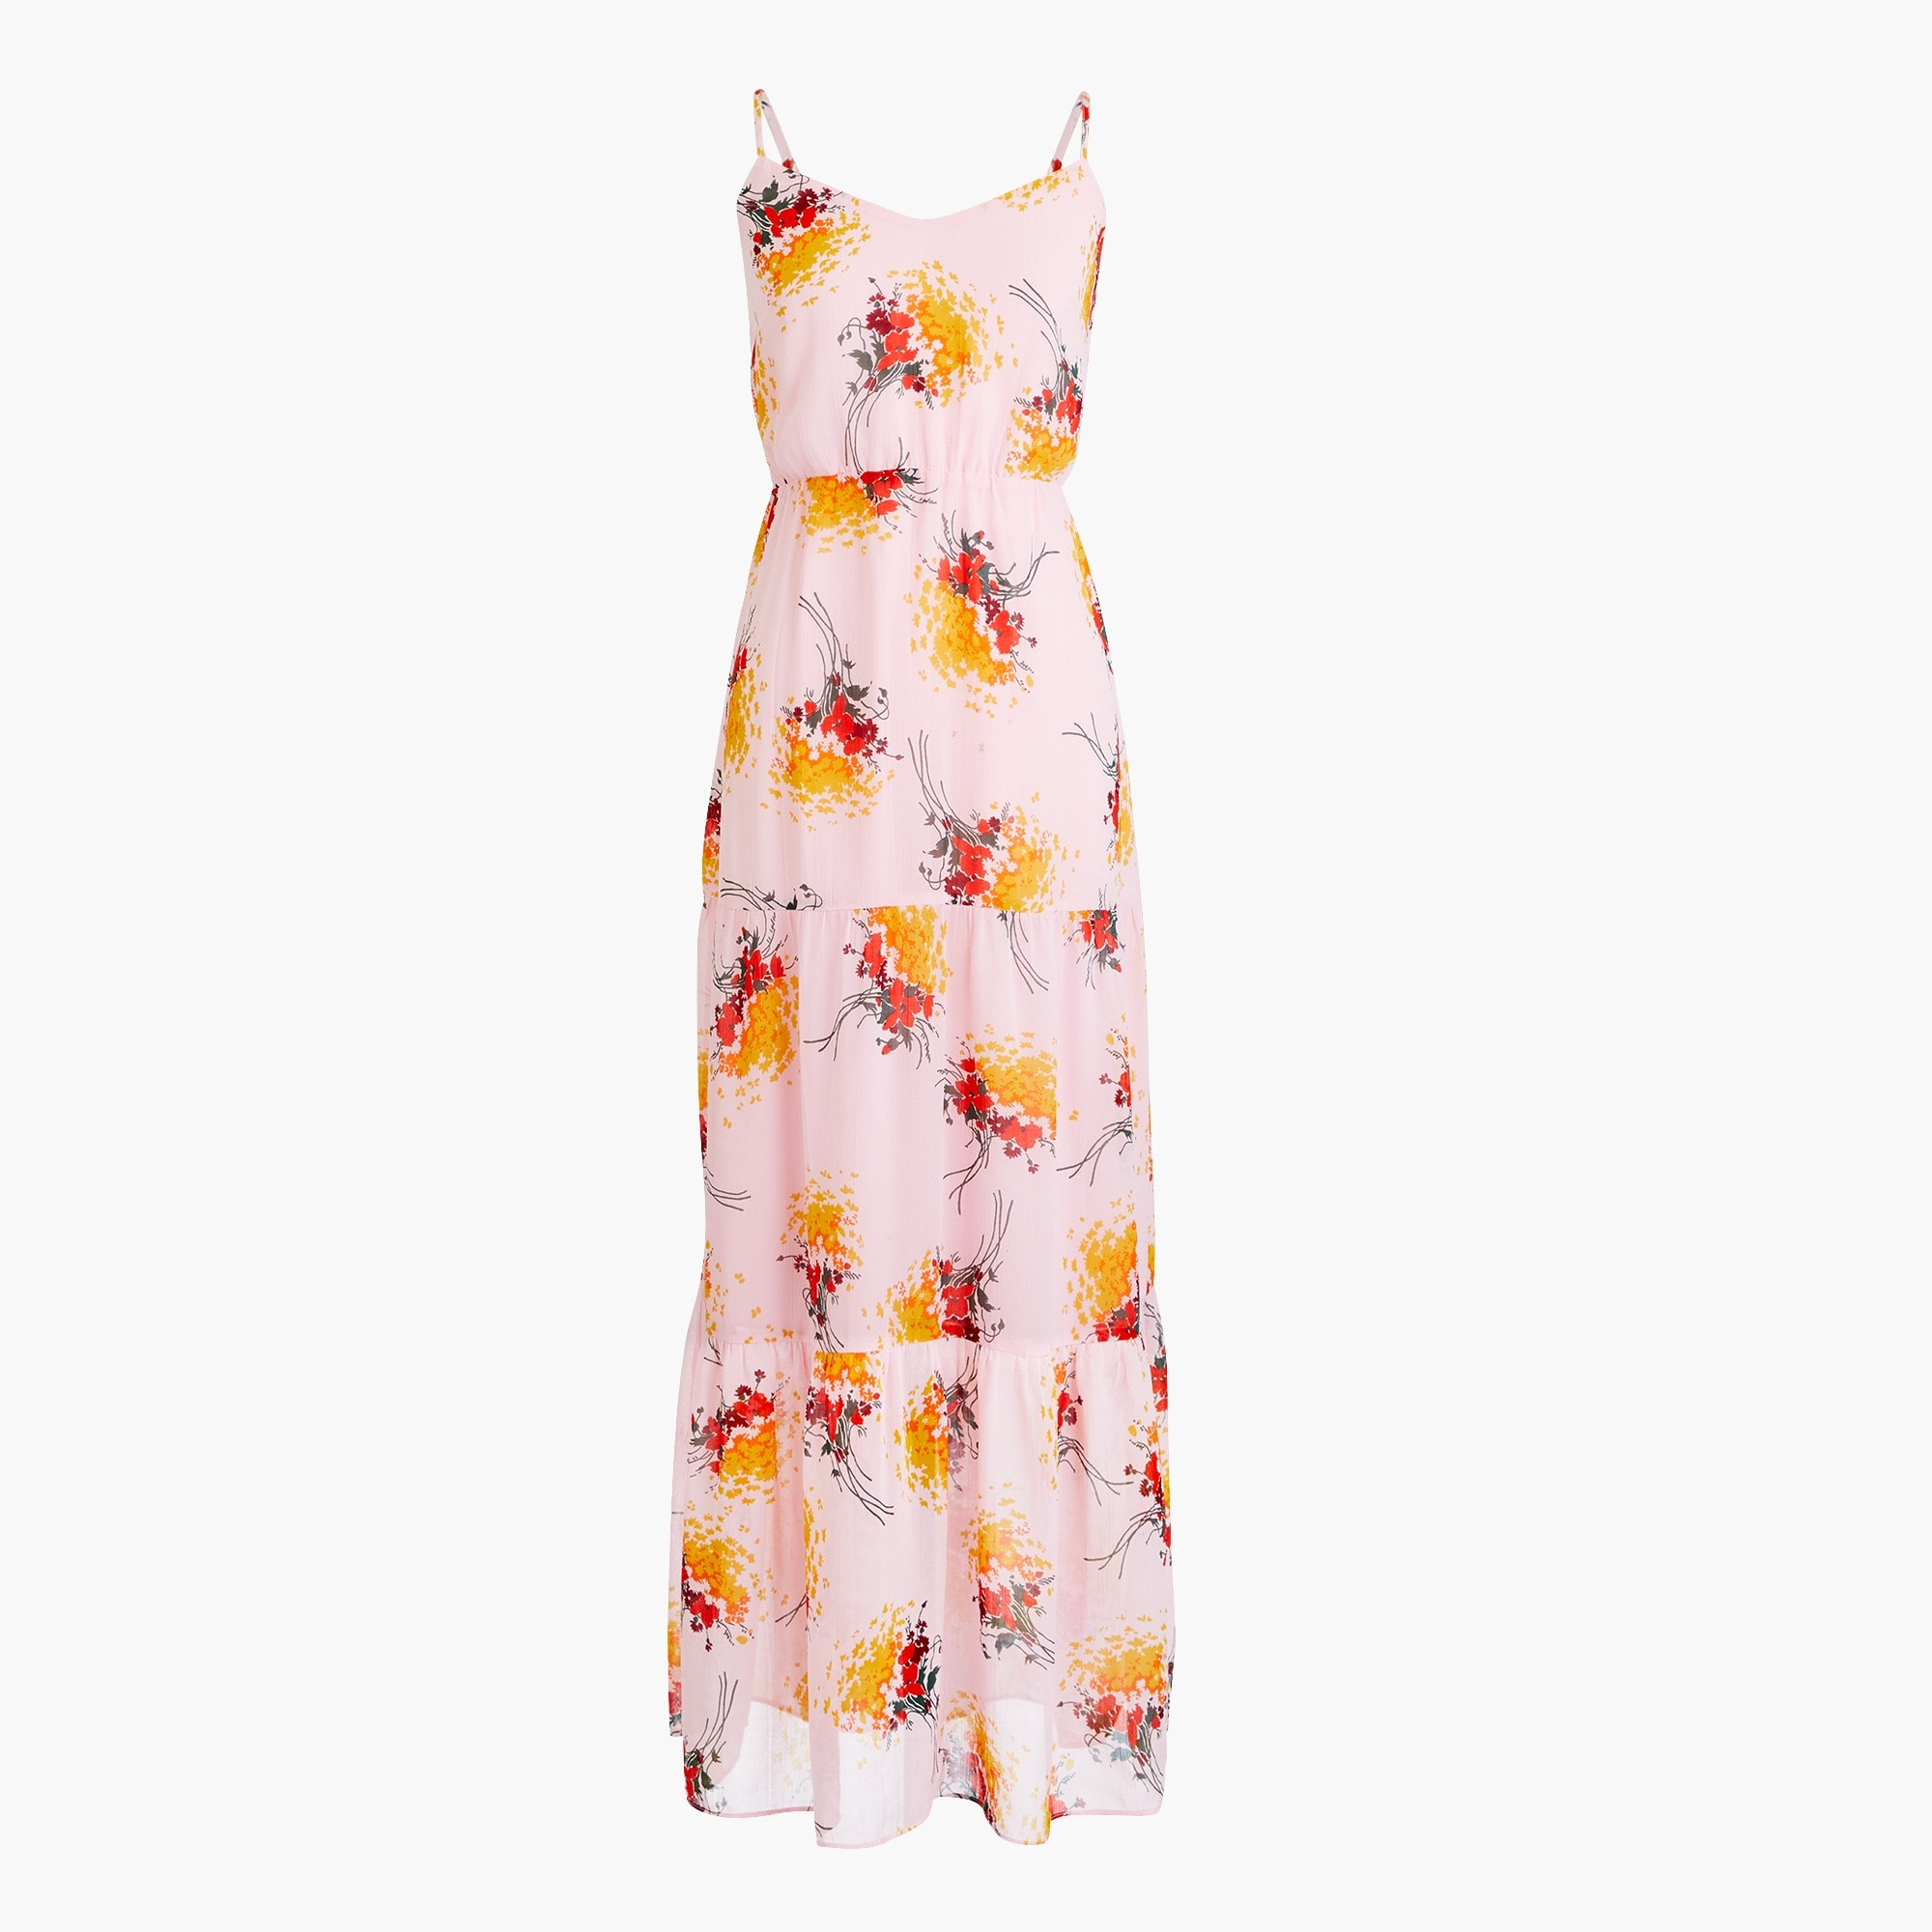 Tall J.Crew Mercantile tiered maxi dress in sunburst bouquet print